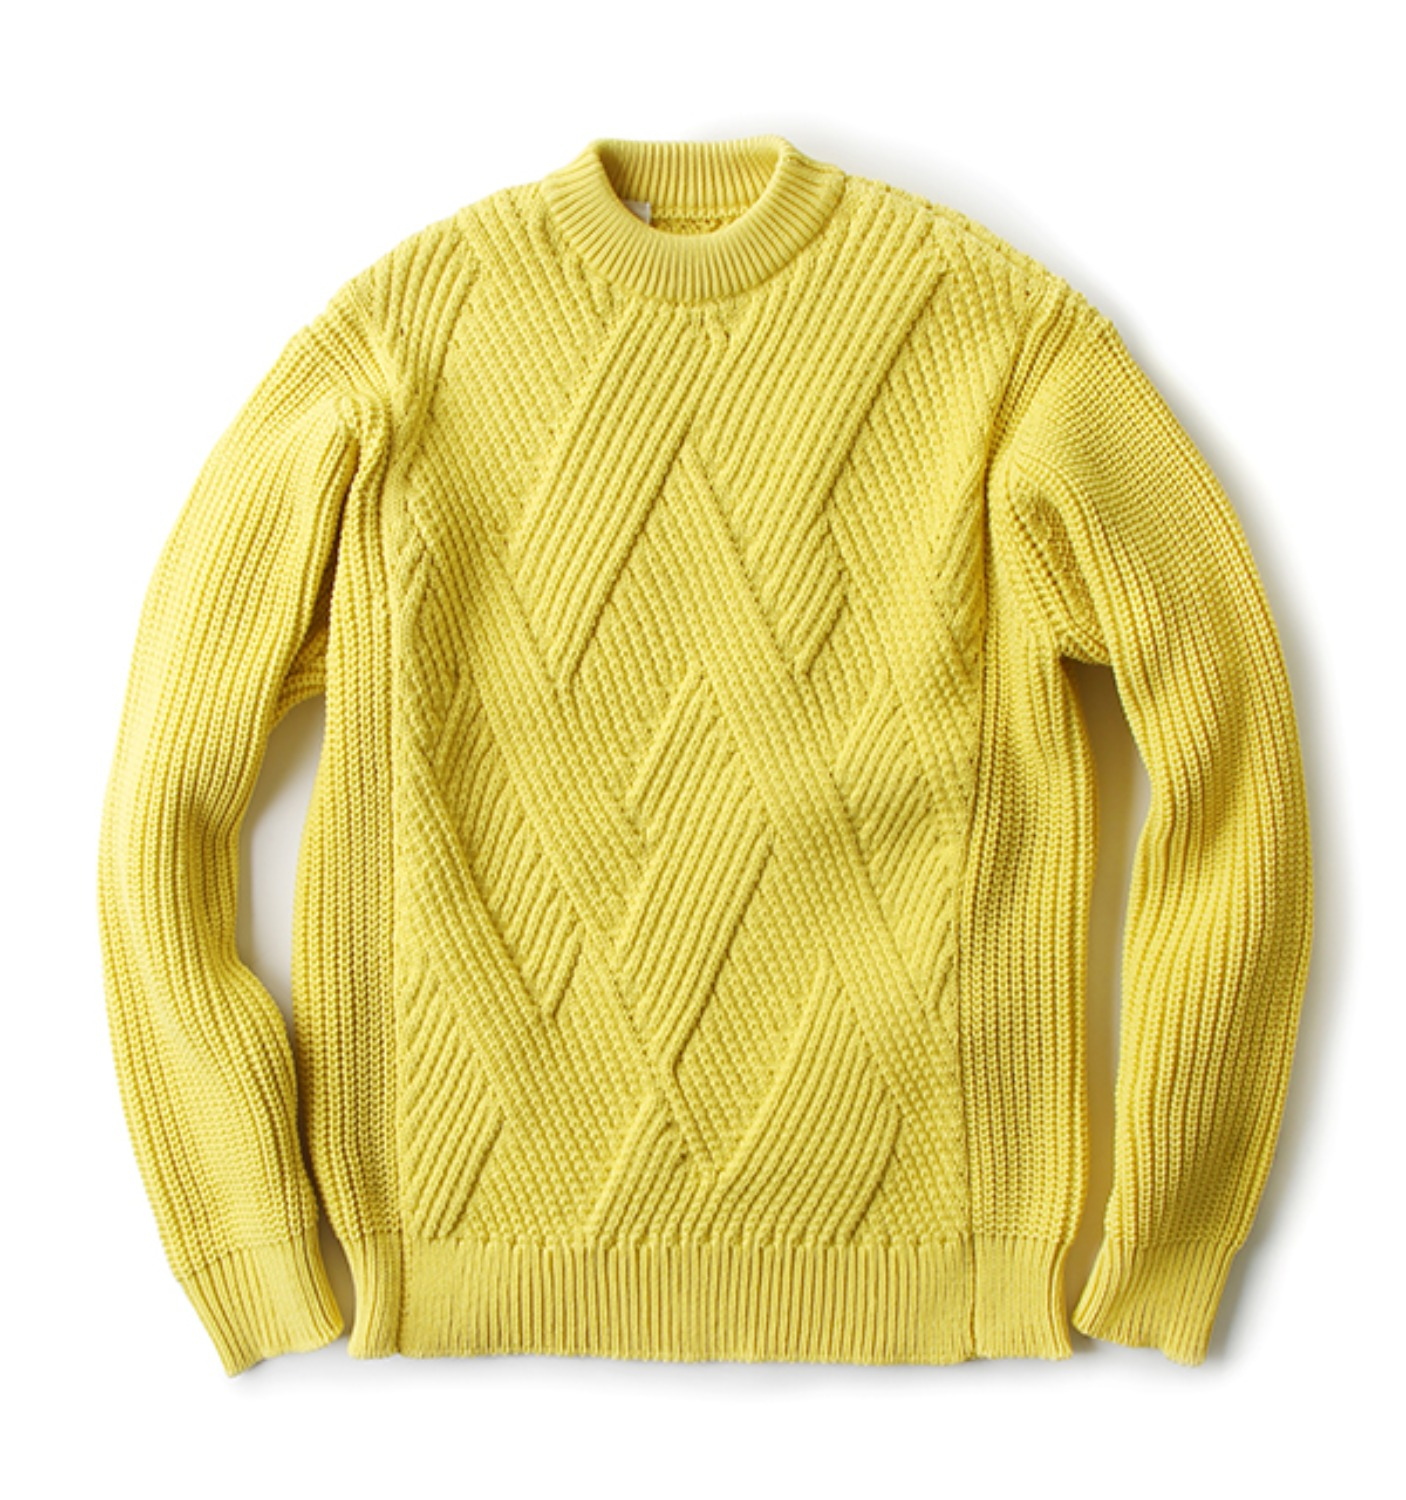 SWEATER YELLOW(162-KT03050)